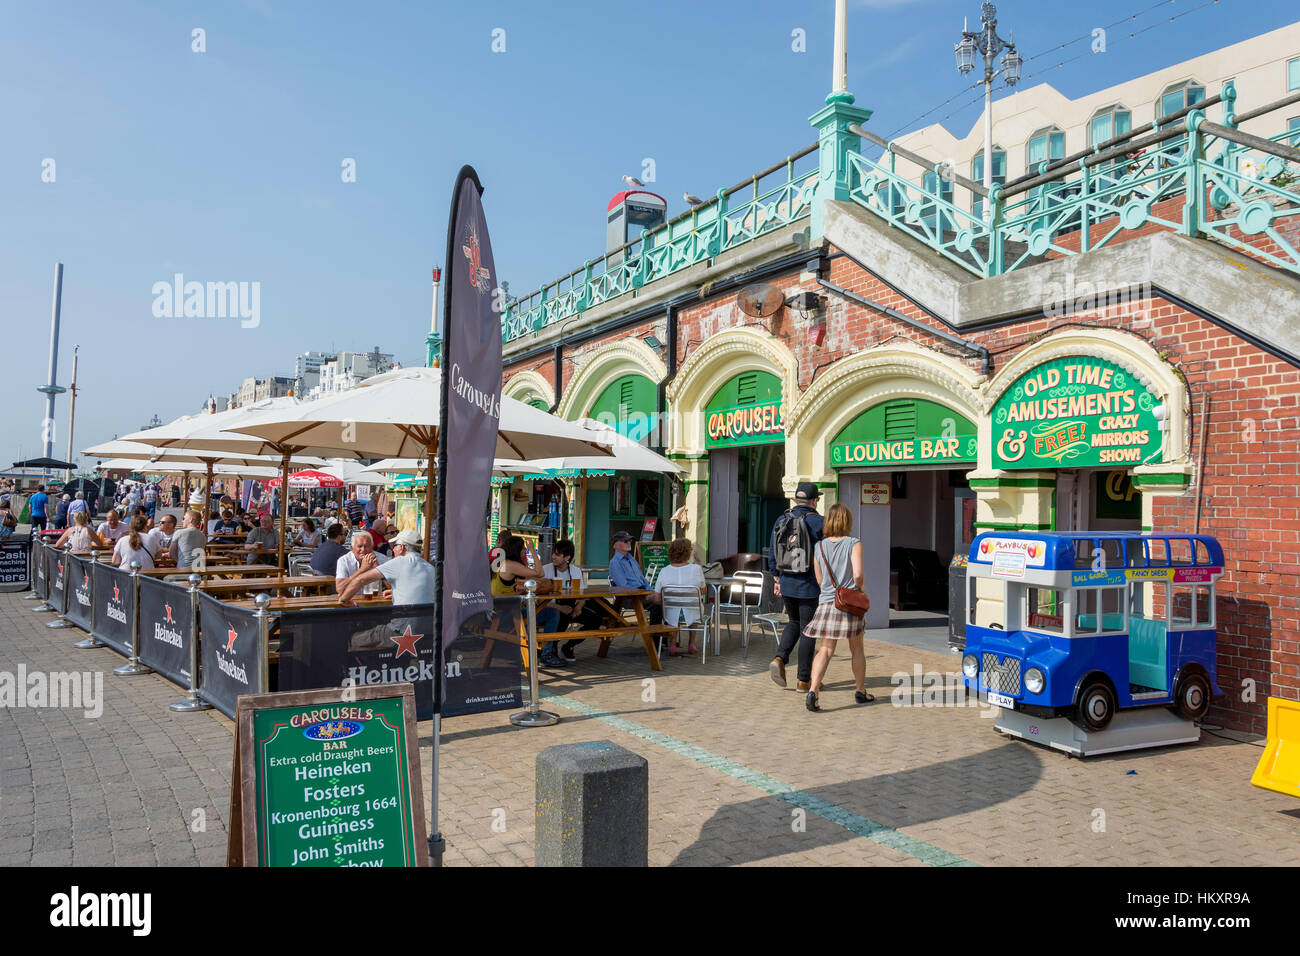 Carousels Bar, Kings Road Arches, Brighton, East Sussex, England, United Kingdom Stock Photo